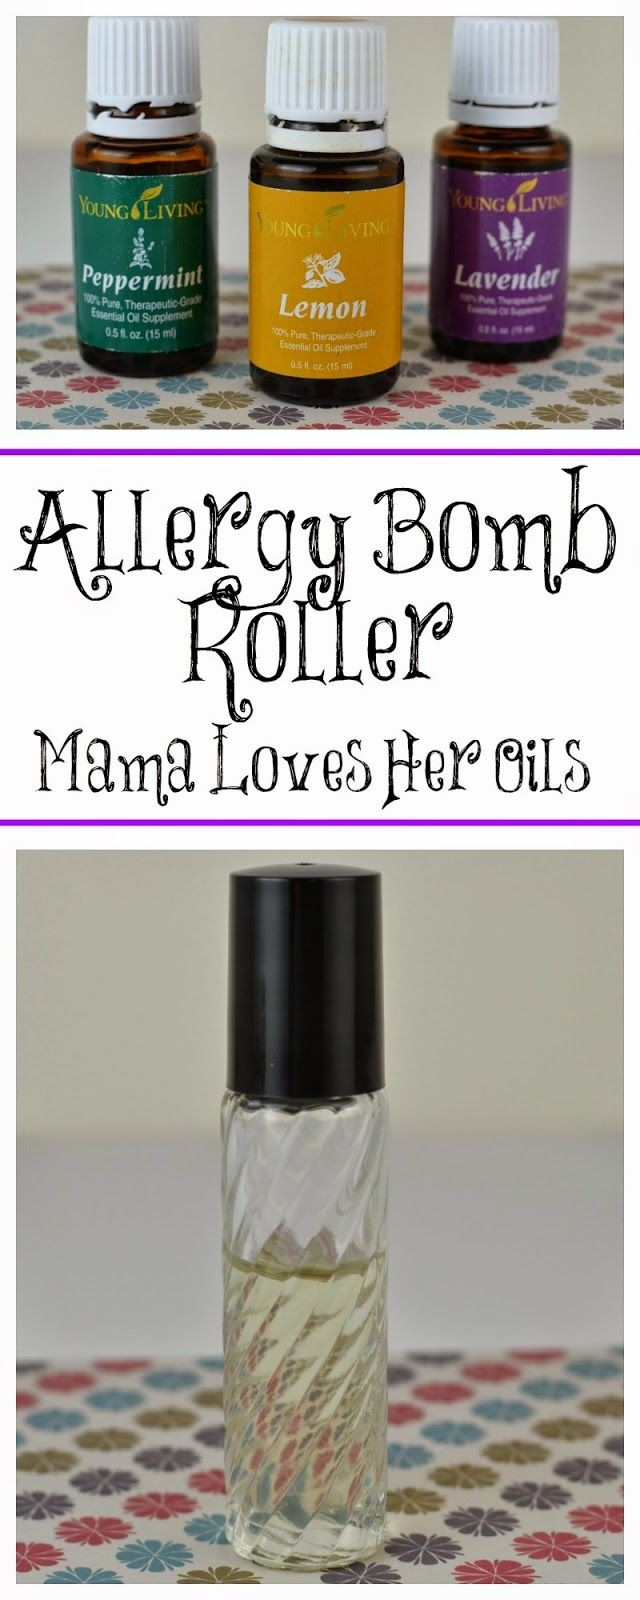 Mama Loves Her Oils!: DIY Young Living Essential O...